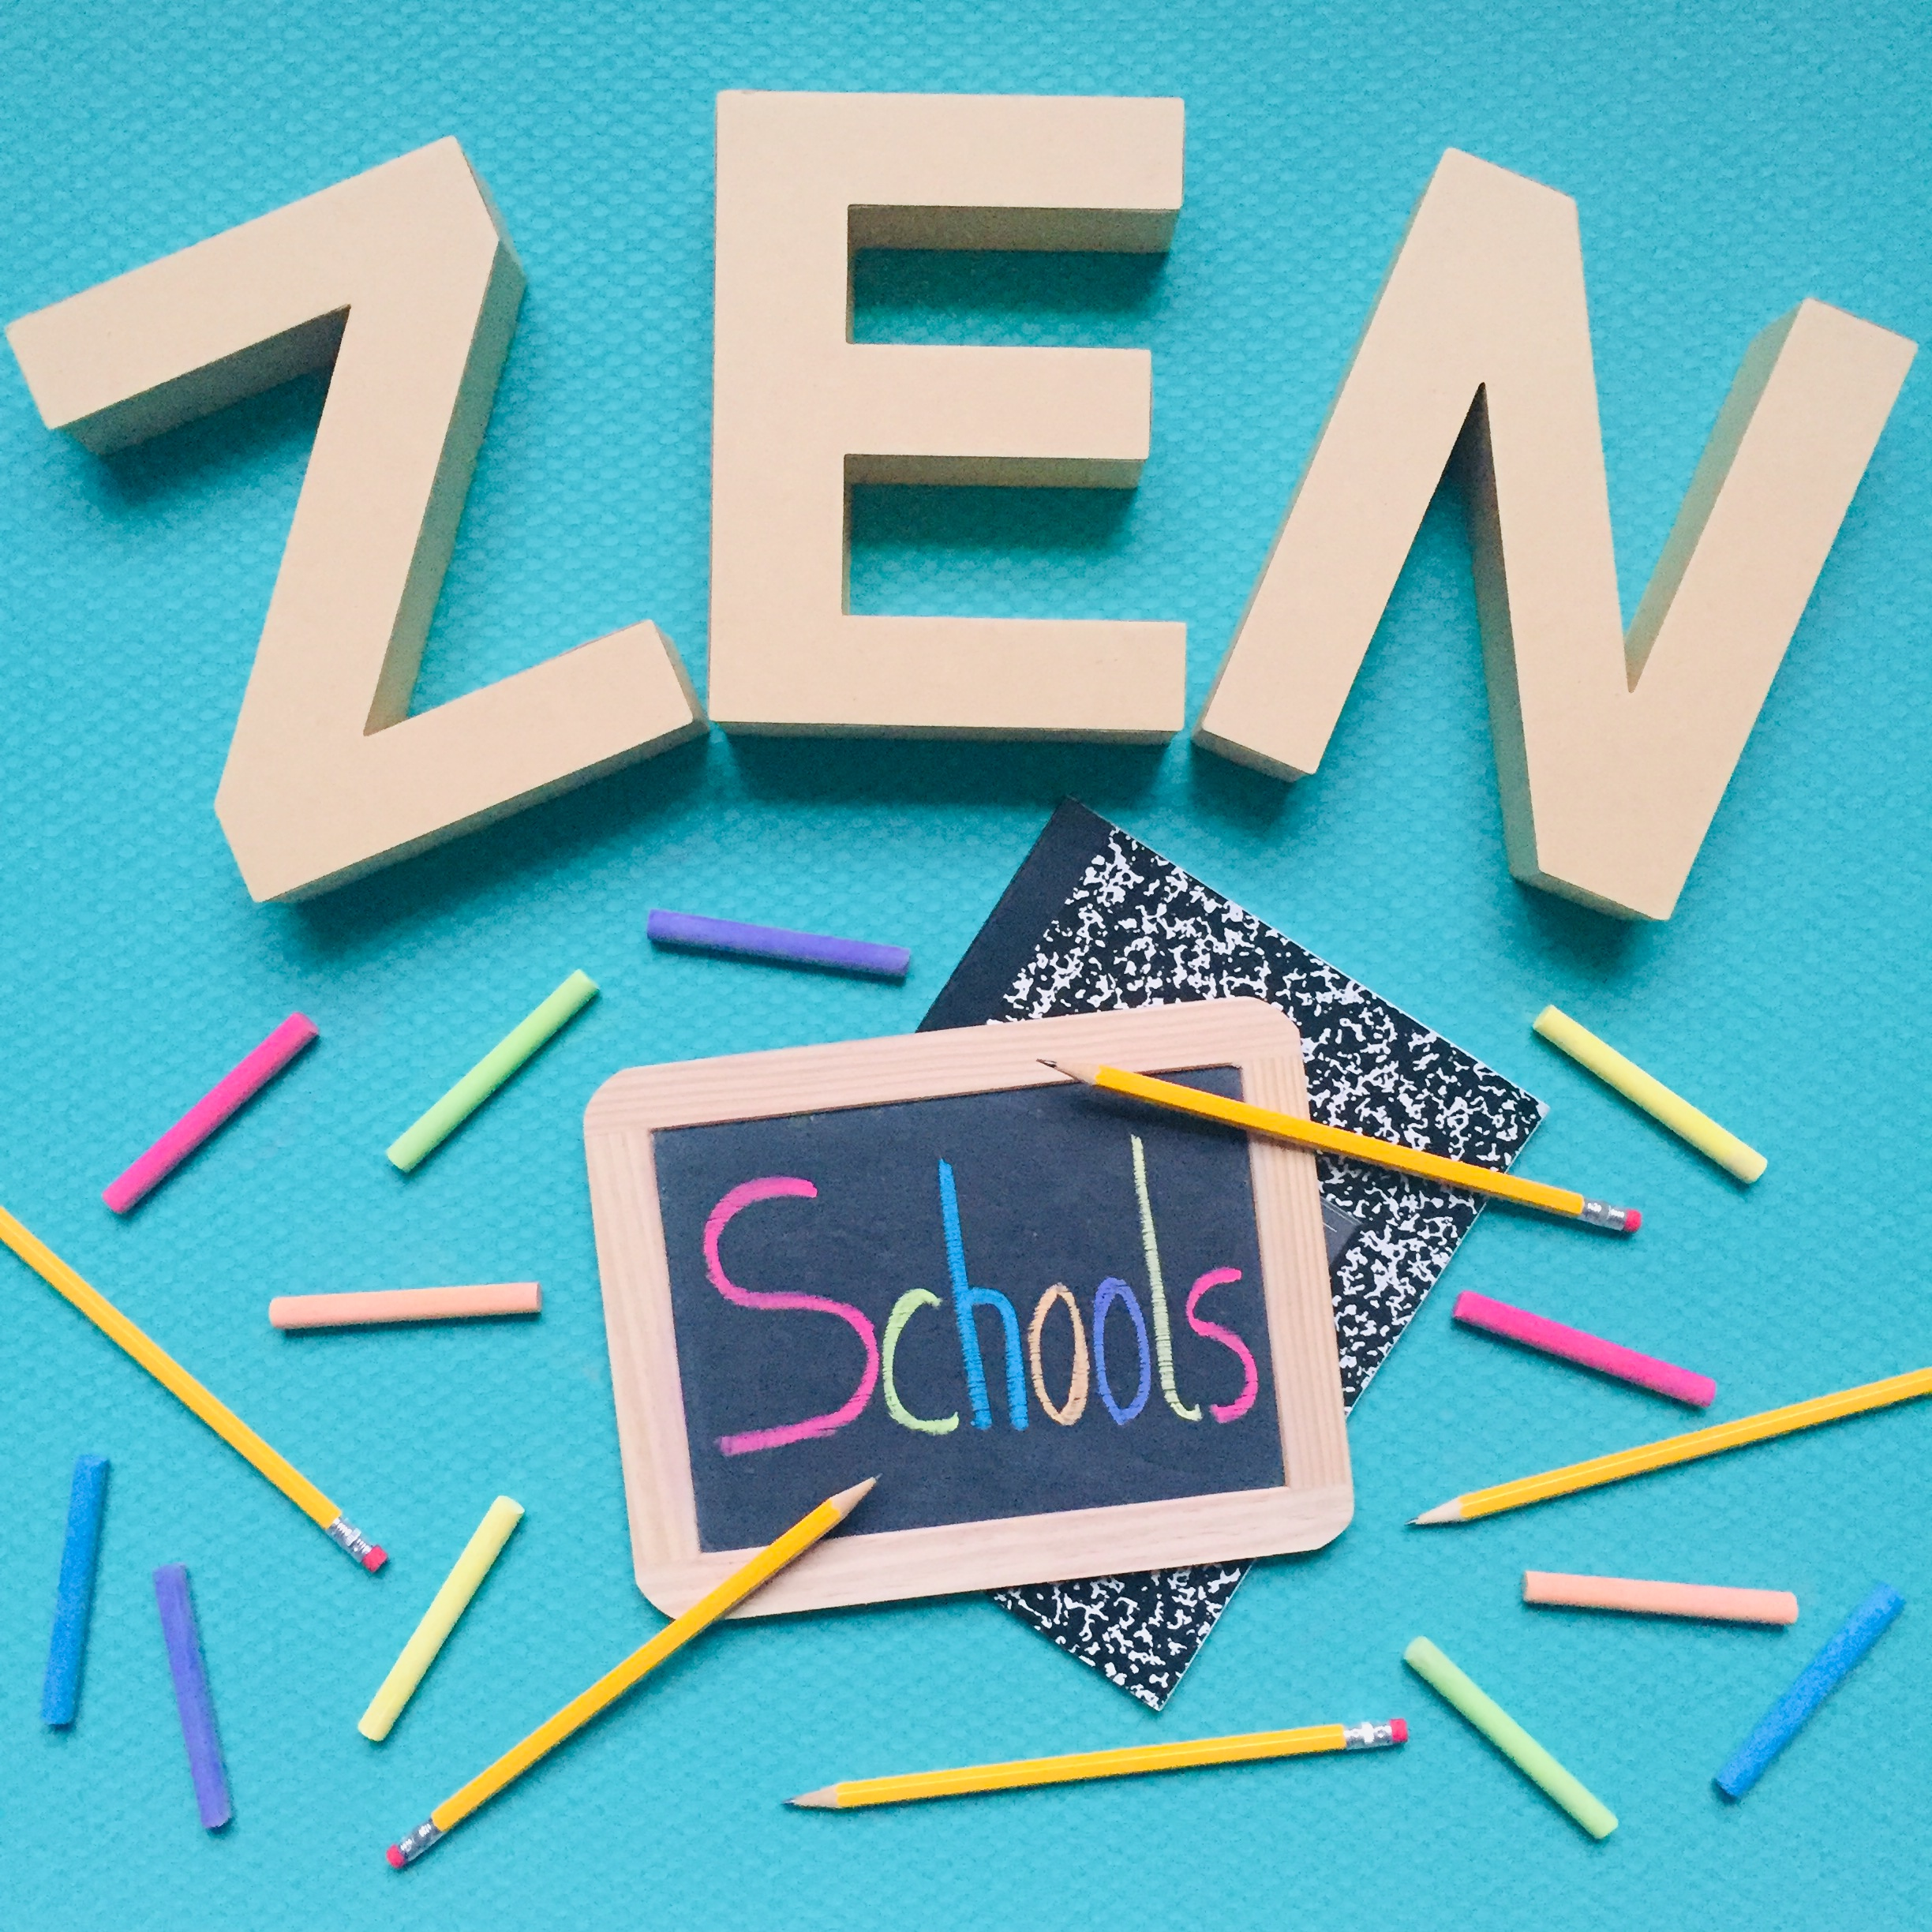 bringing mindfulness & yoga to schools - Zen Kids and Zen Teachers will make the world a better place. One school at a time!